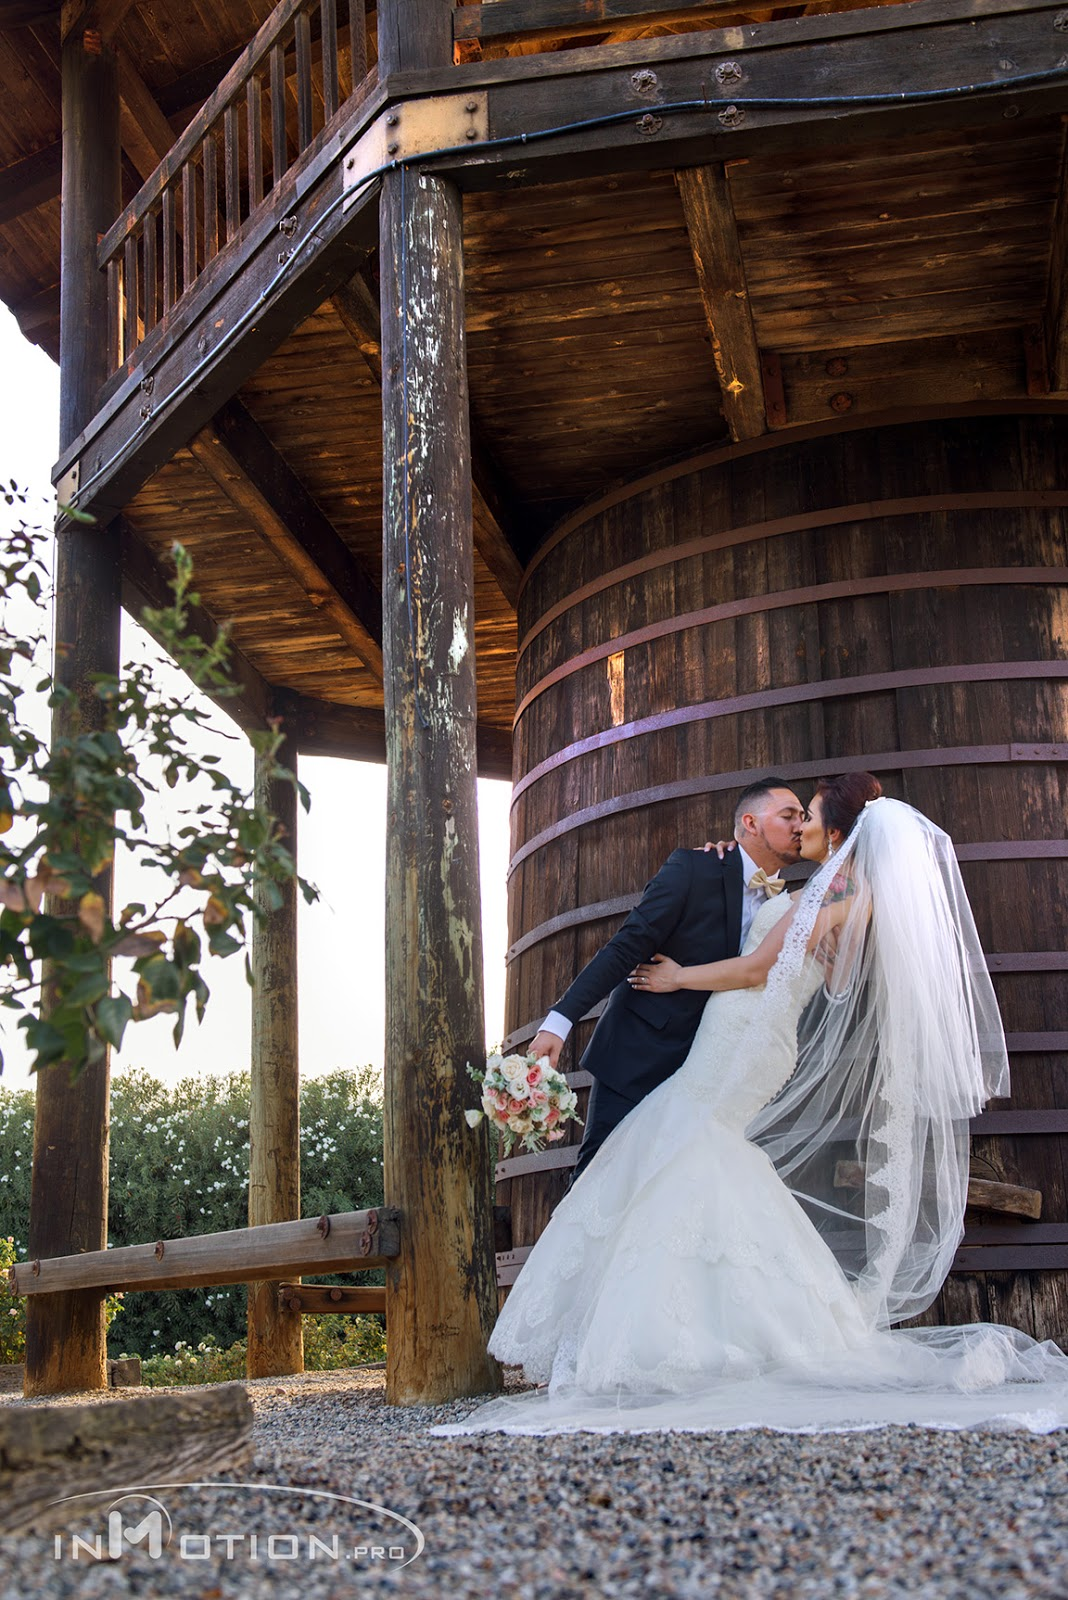 Water Tower Bride And Groom Portraits Kissing White Wedding Dress Photography